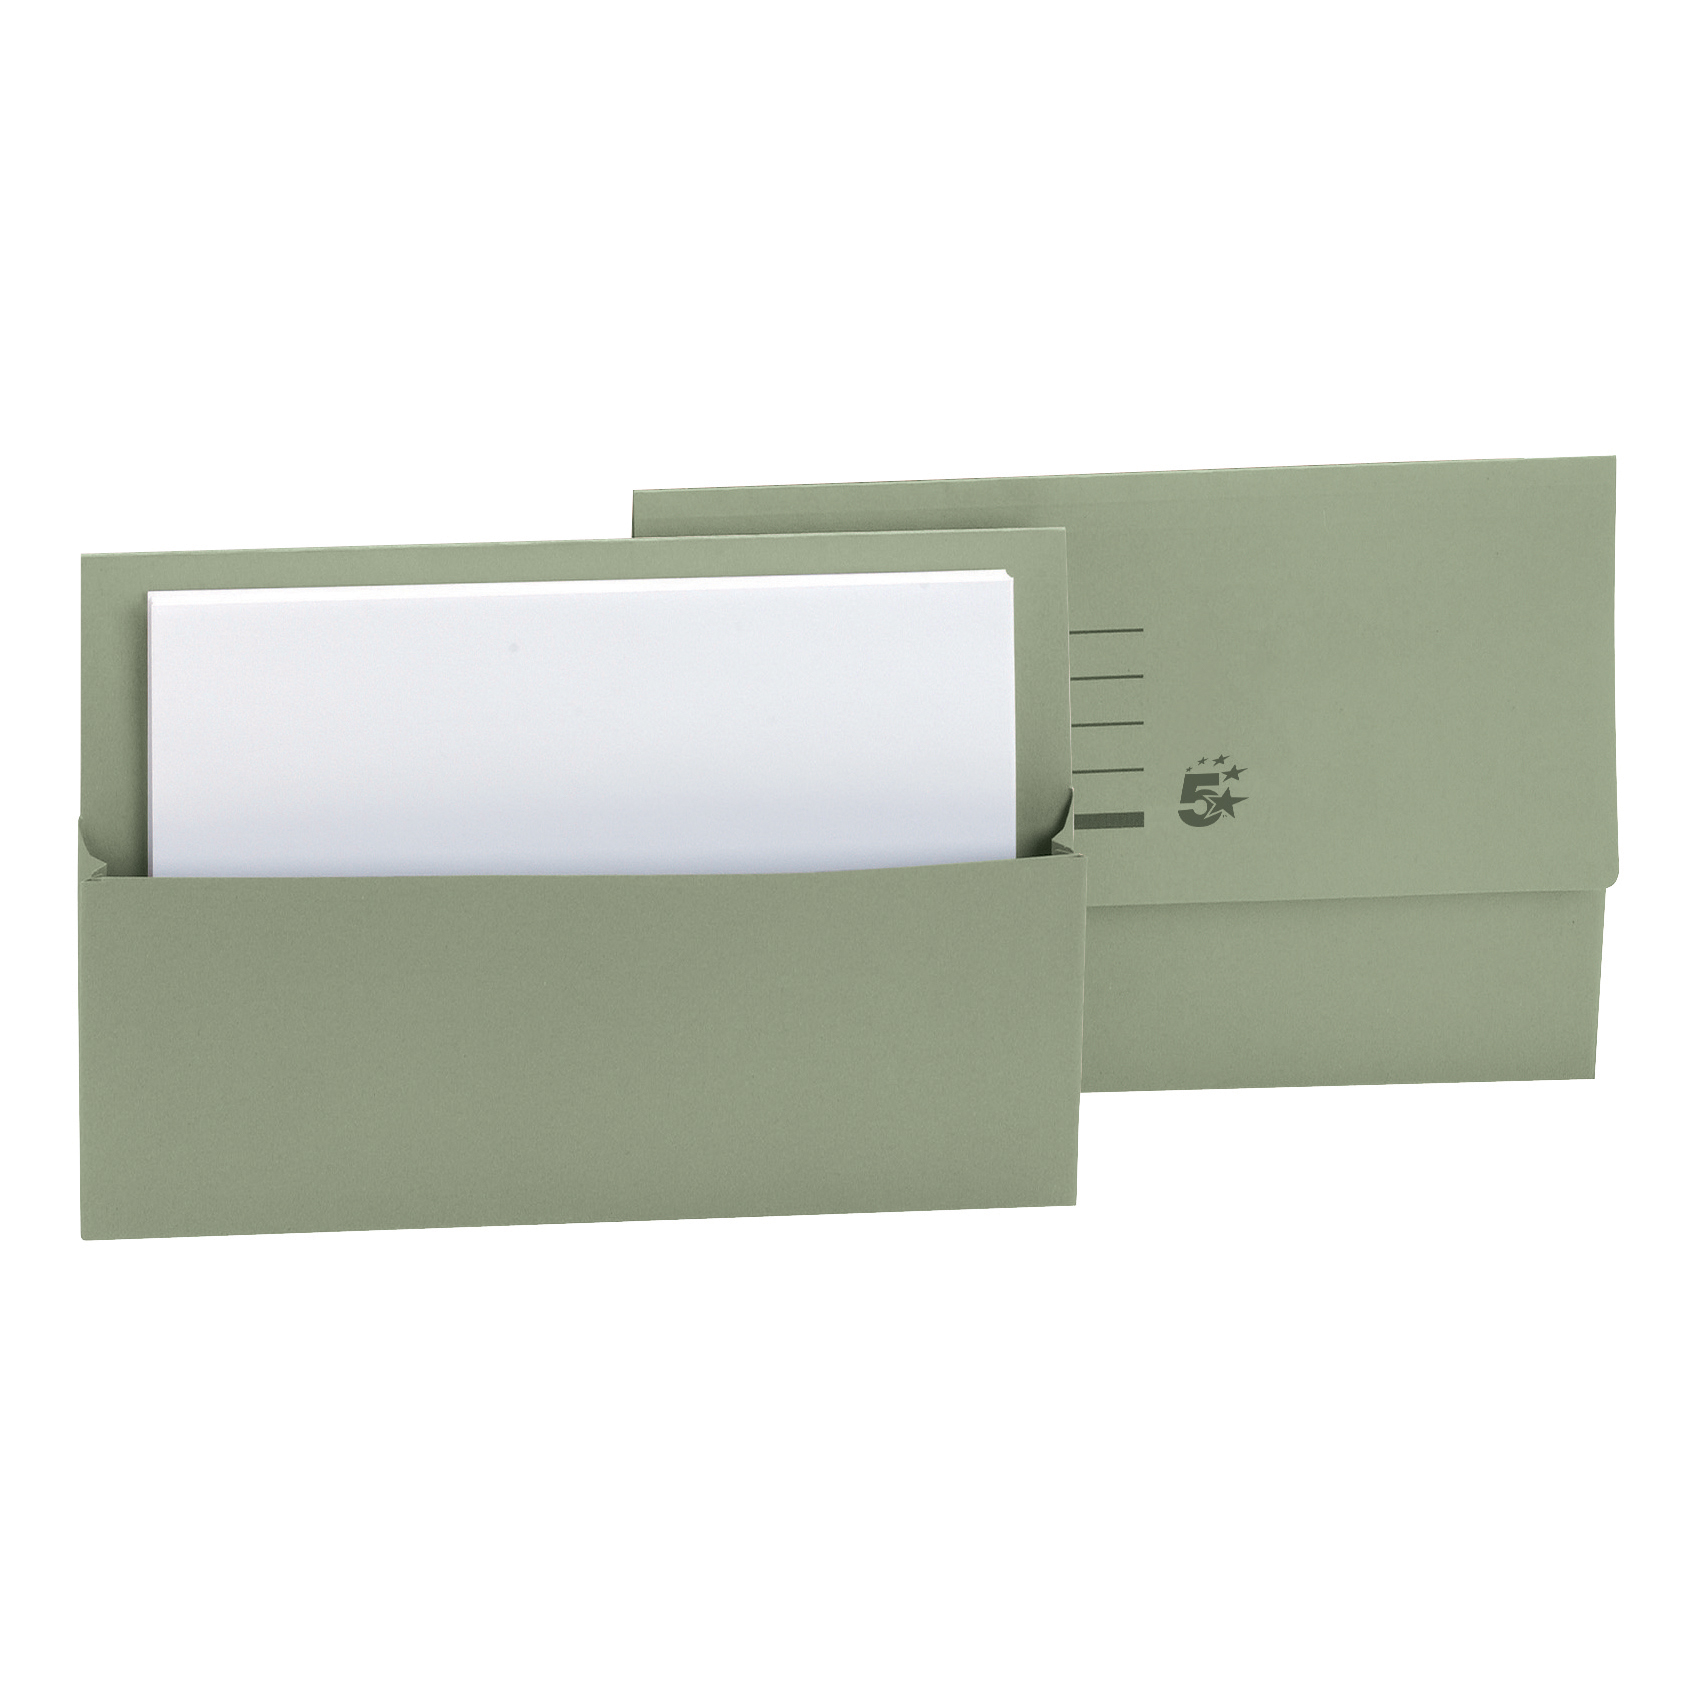 5 Star Office Document Wallet Half Flap 250gsm Recycled Capacity 32mm Foolscap Green Pack 50